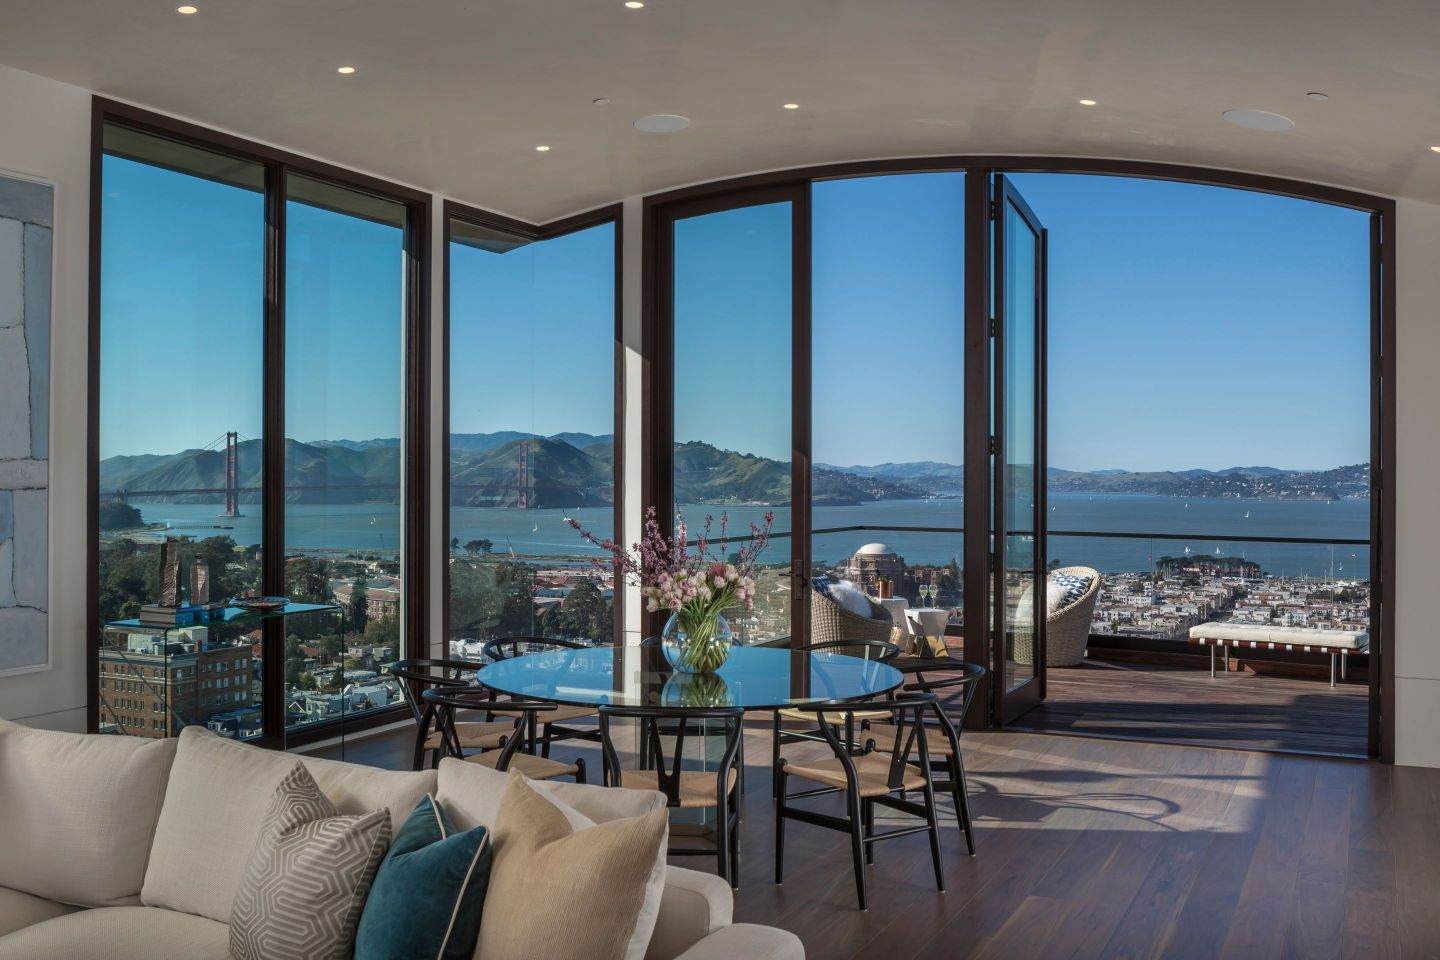 Peek Inside The Most Expensive Home For Sale In San Francisco